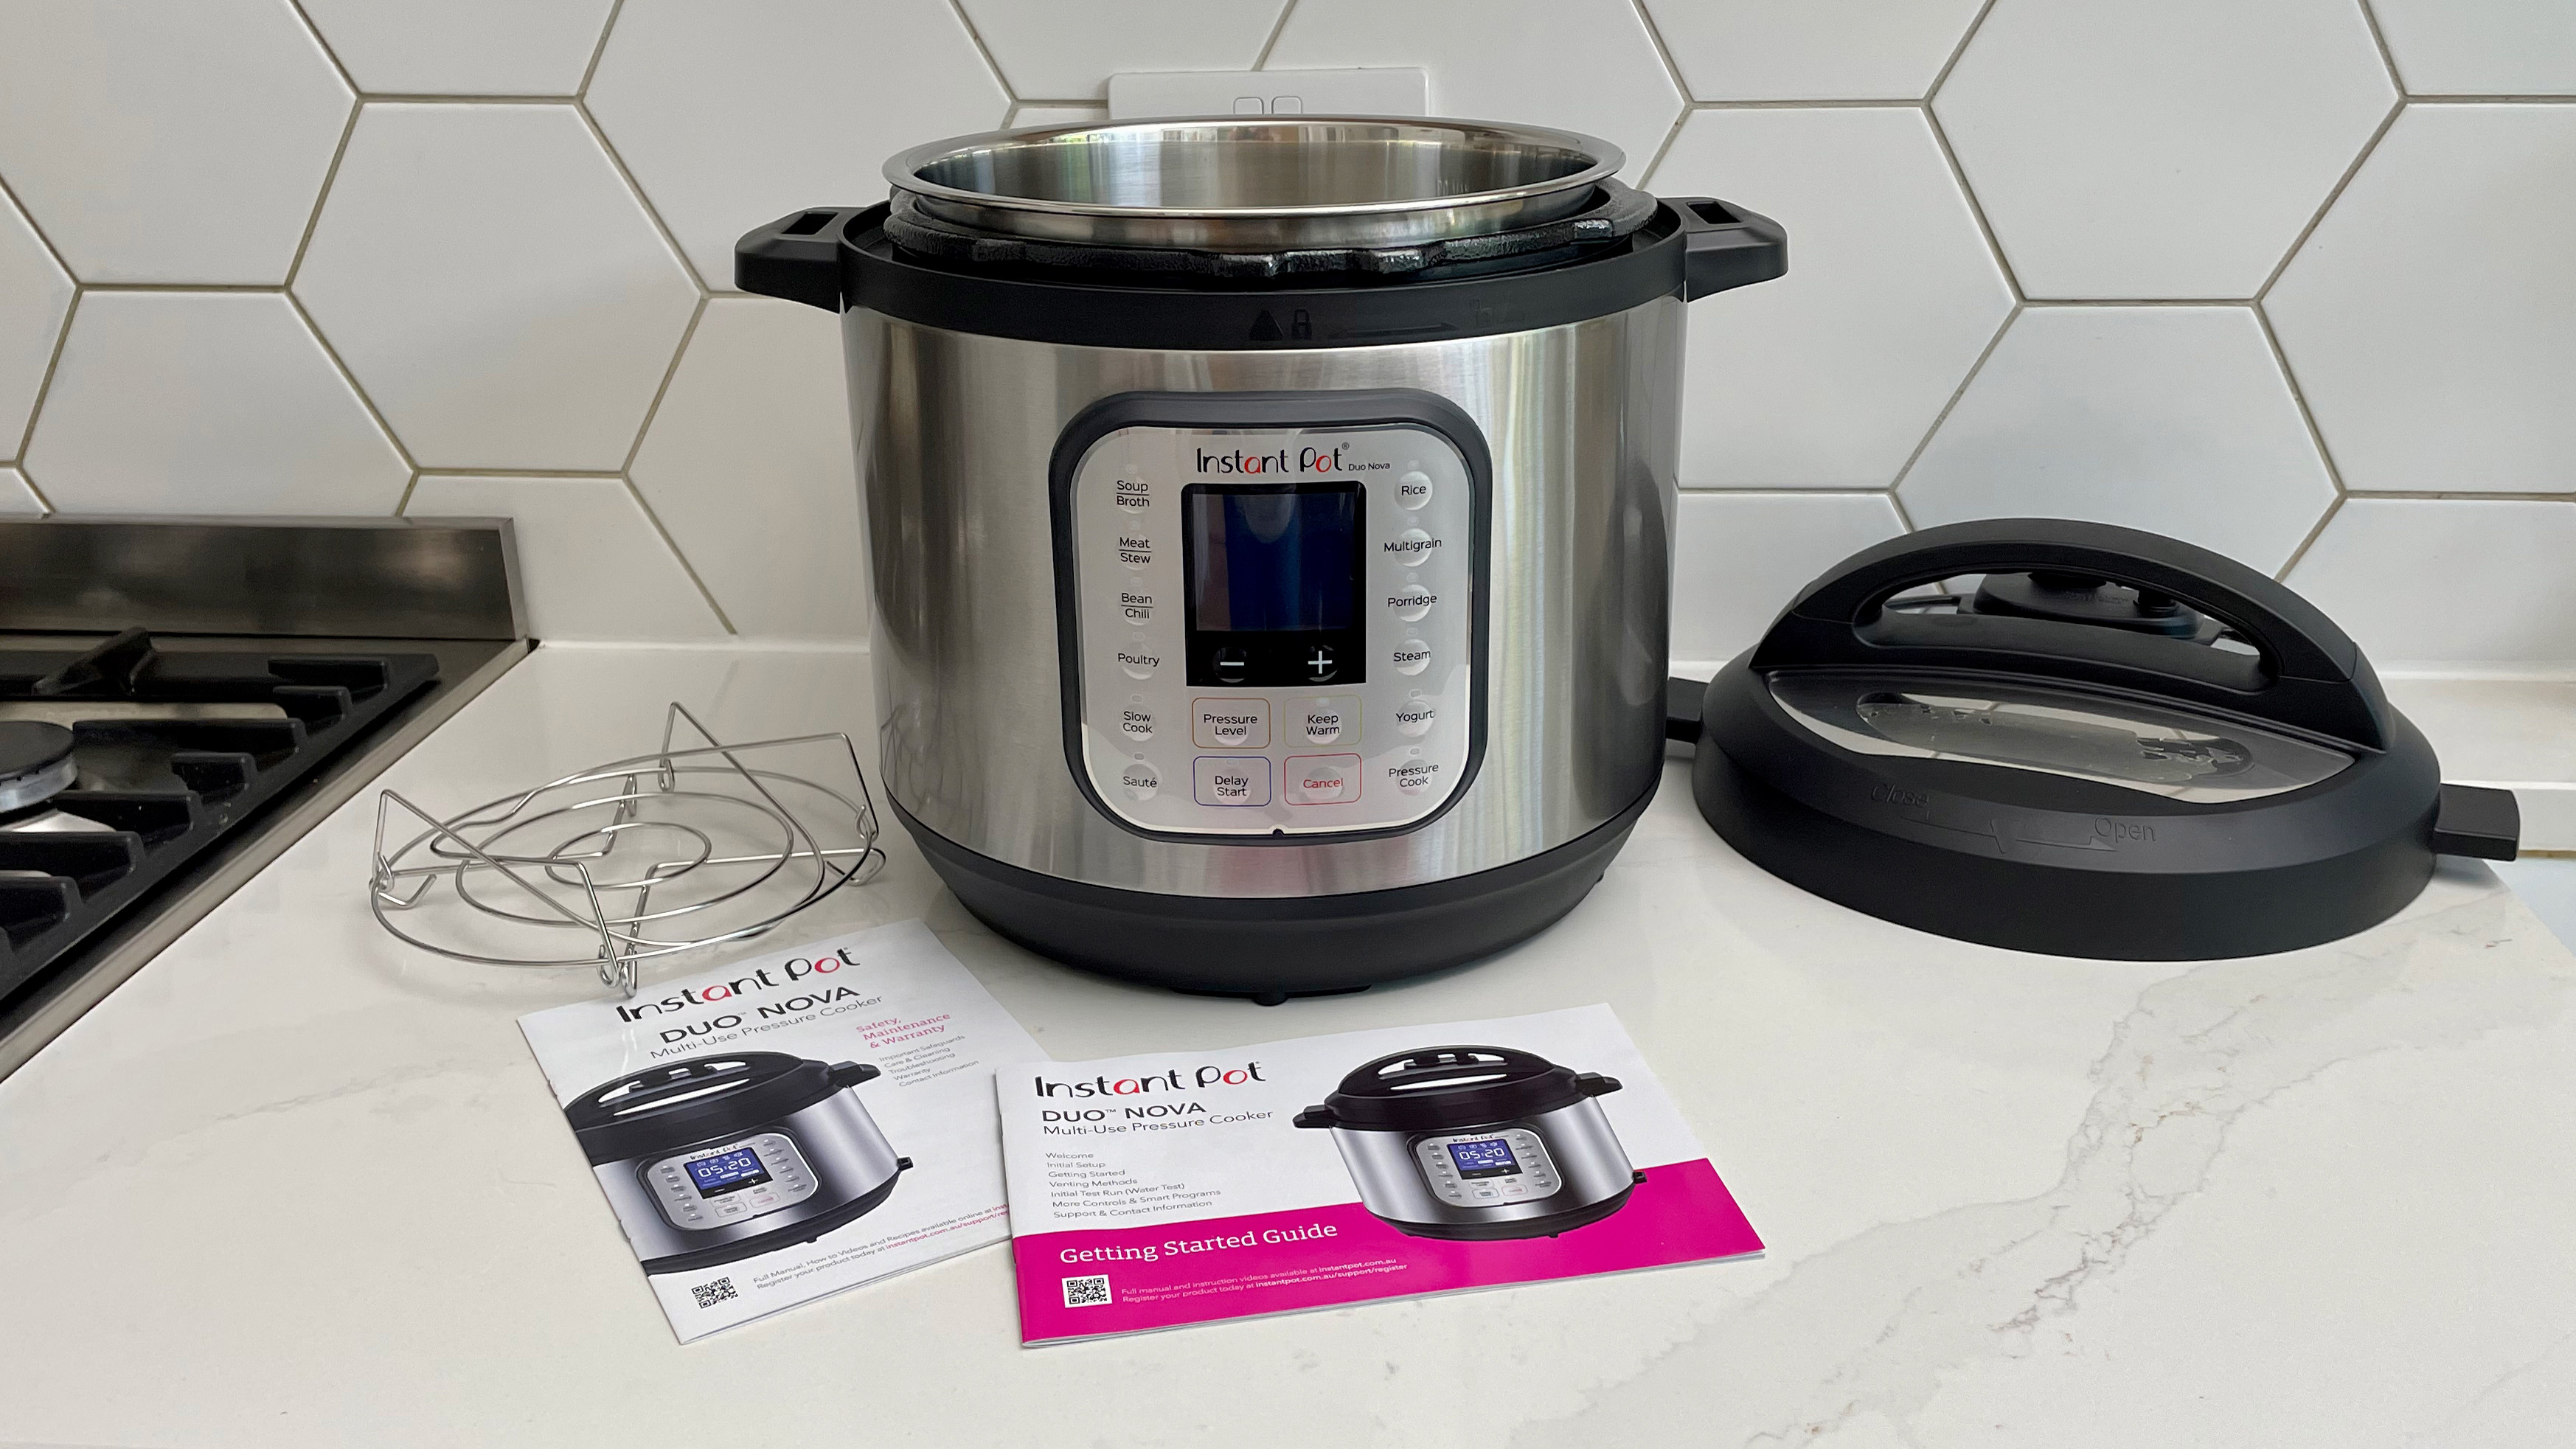 The Instant Pot Duo Nova on a kitchen countertop surrounded by its accessories